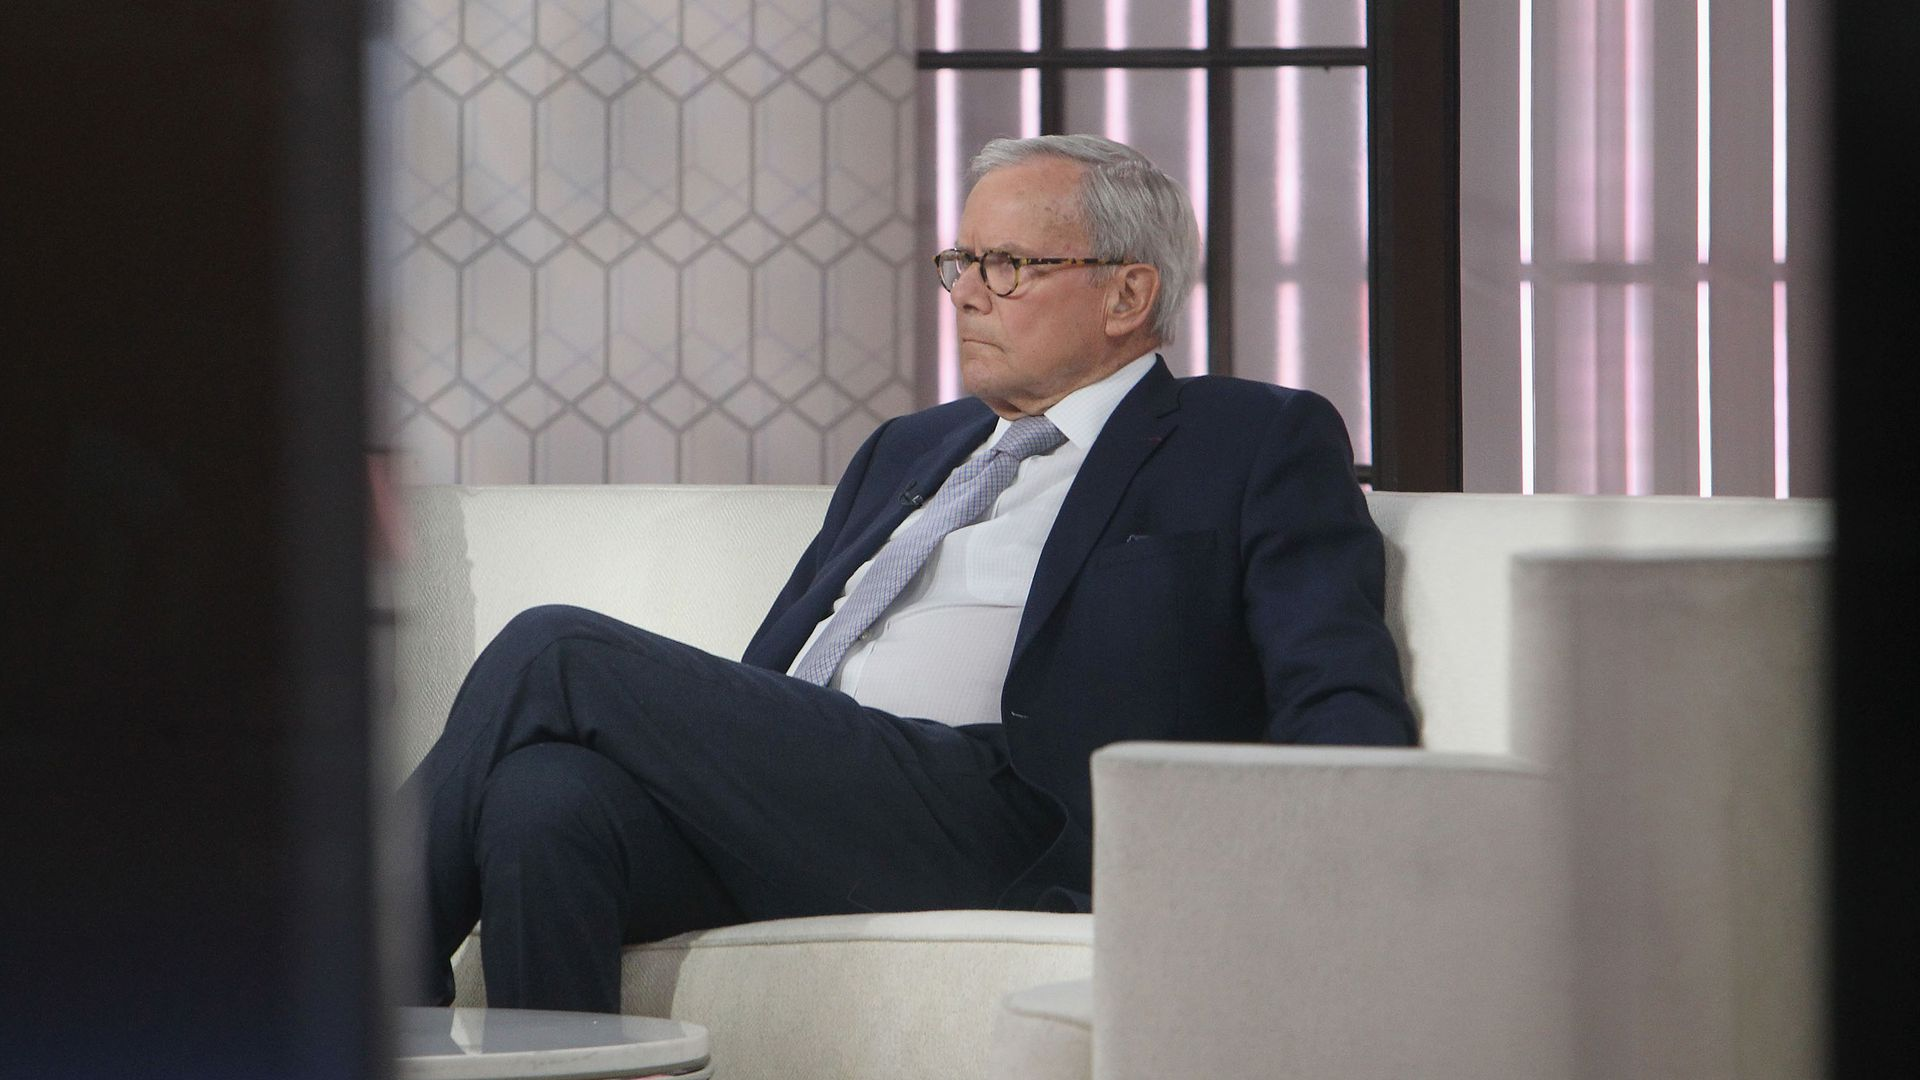 Tom Brokaw sitting on a couch.